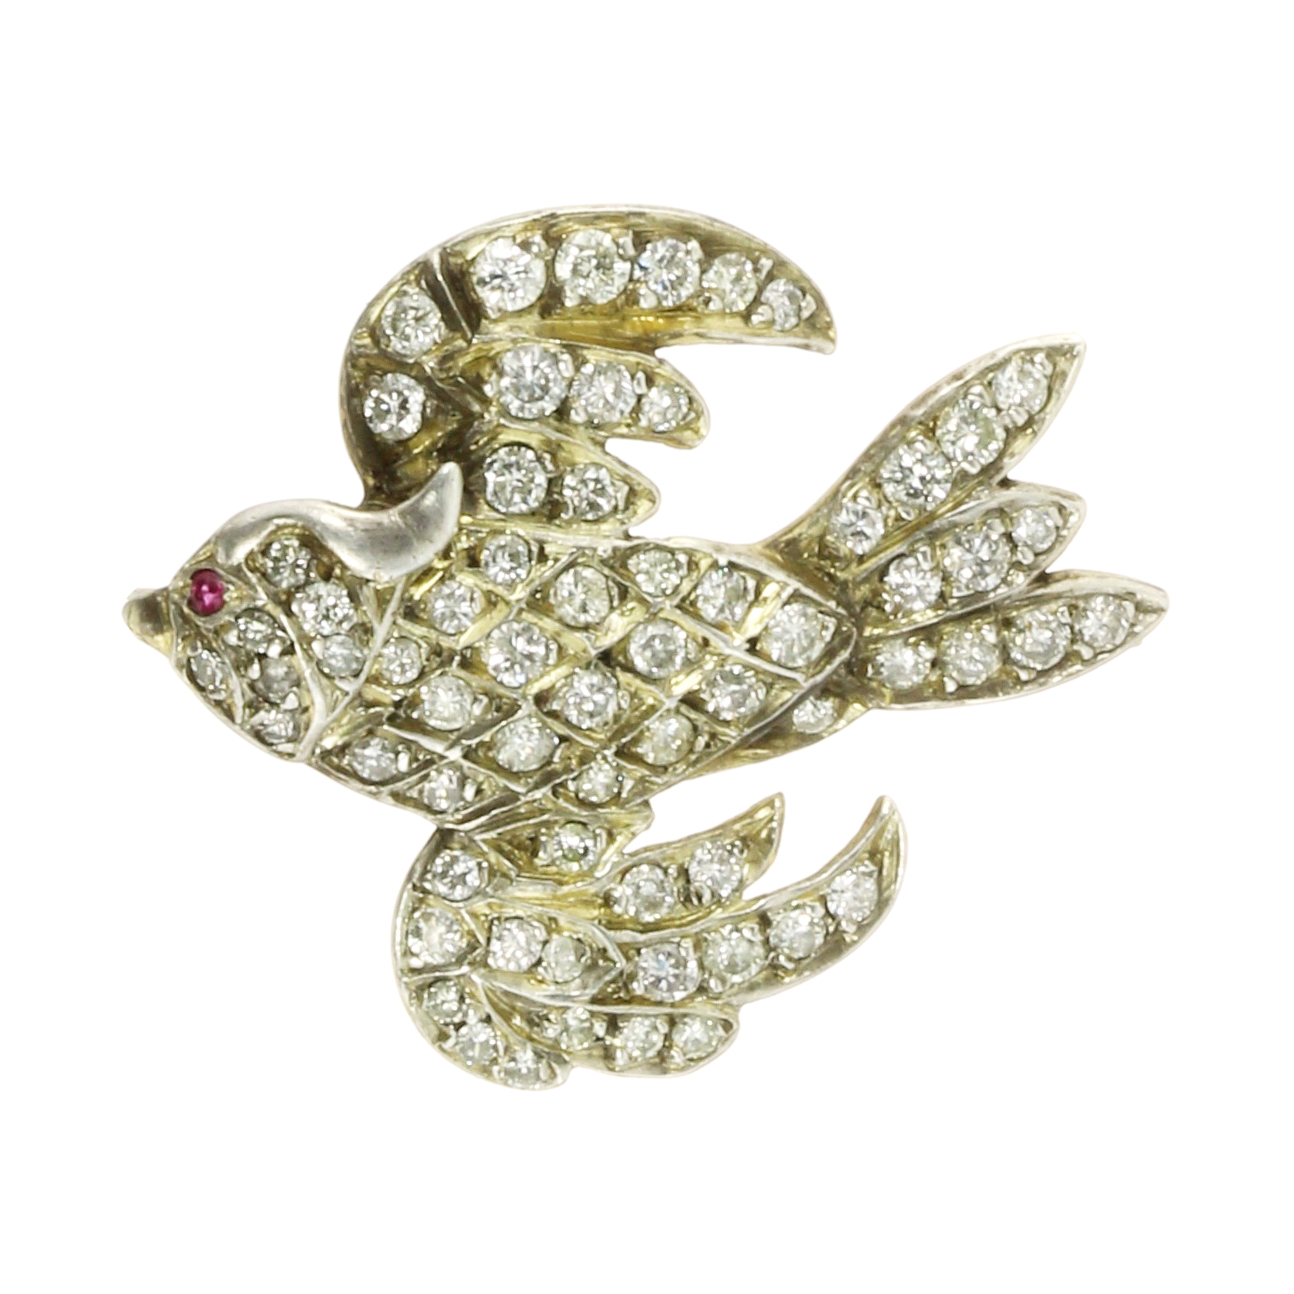 Los 46 - A JEWELLED RUBY AND DIAMOND BIRD BROOCH in yellow gold modeled as a bird in flight, jewelled all